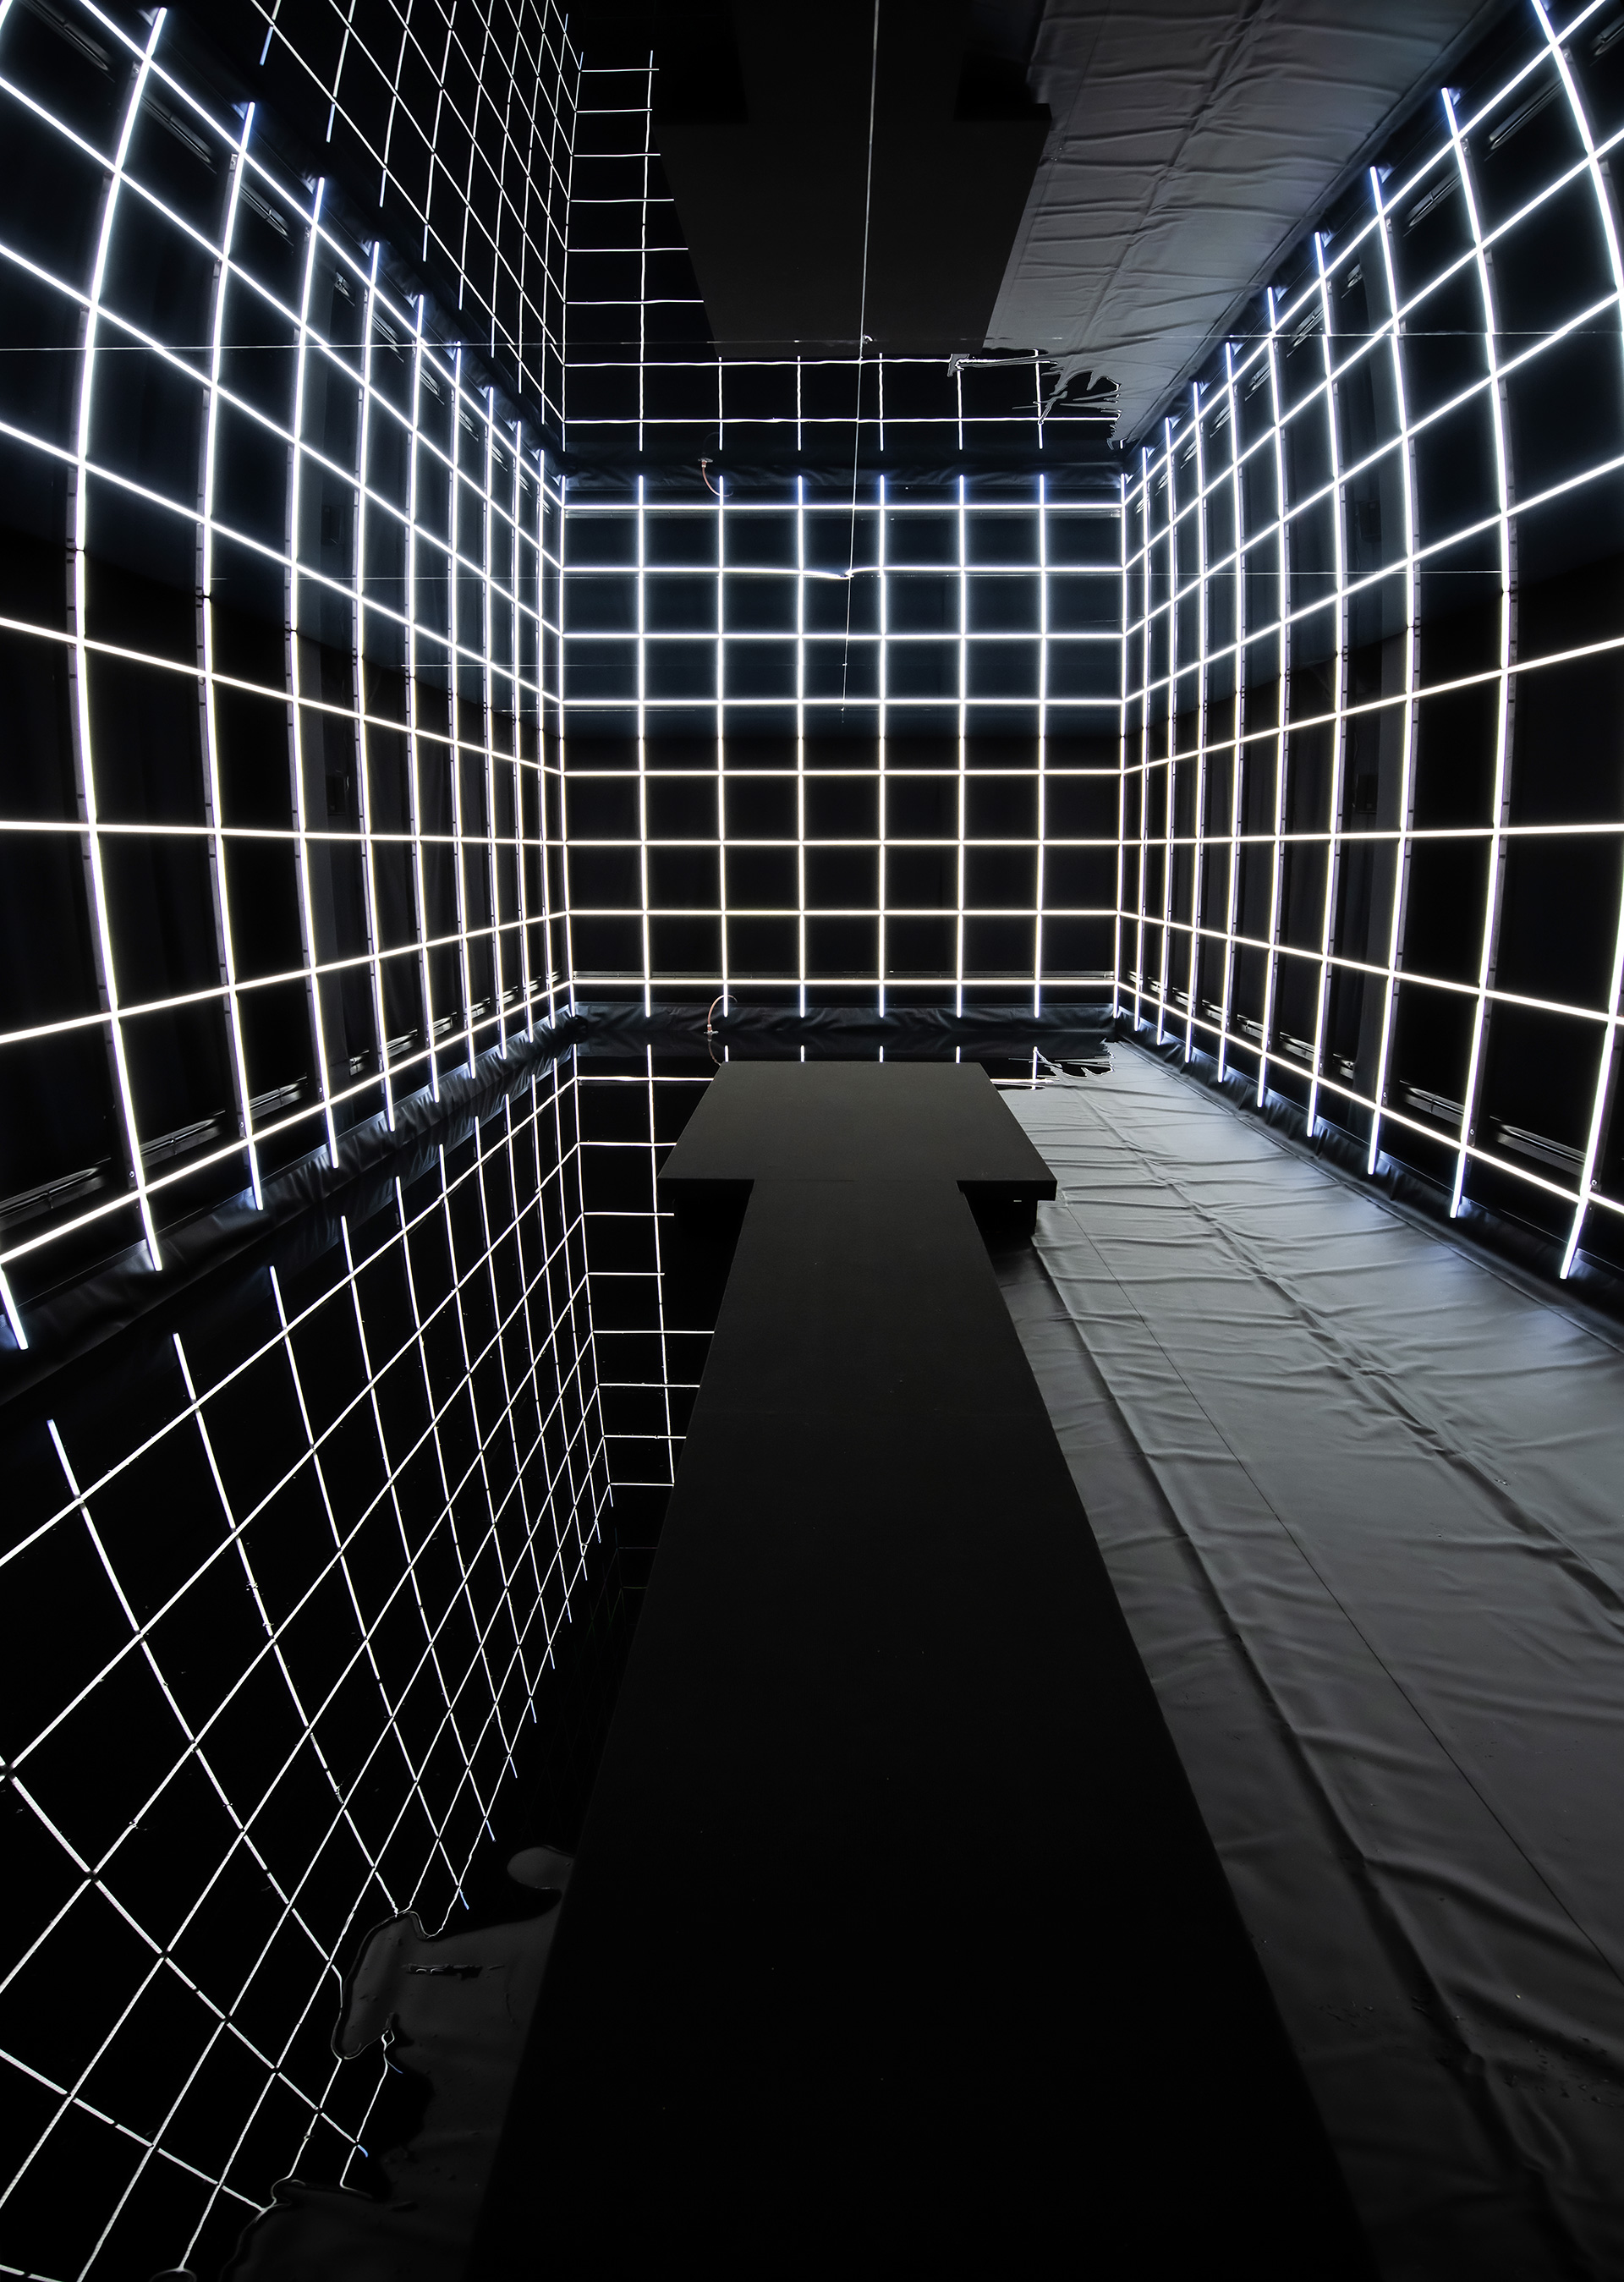 Jacqueline Hen's Light High explored how spatial acoustic installations influence the state of consciousness | International Light Art Award 2019 | Jacqueline Hen | STIRworld